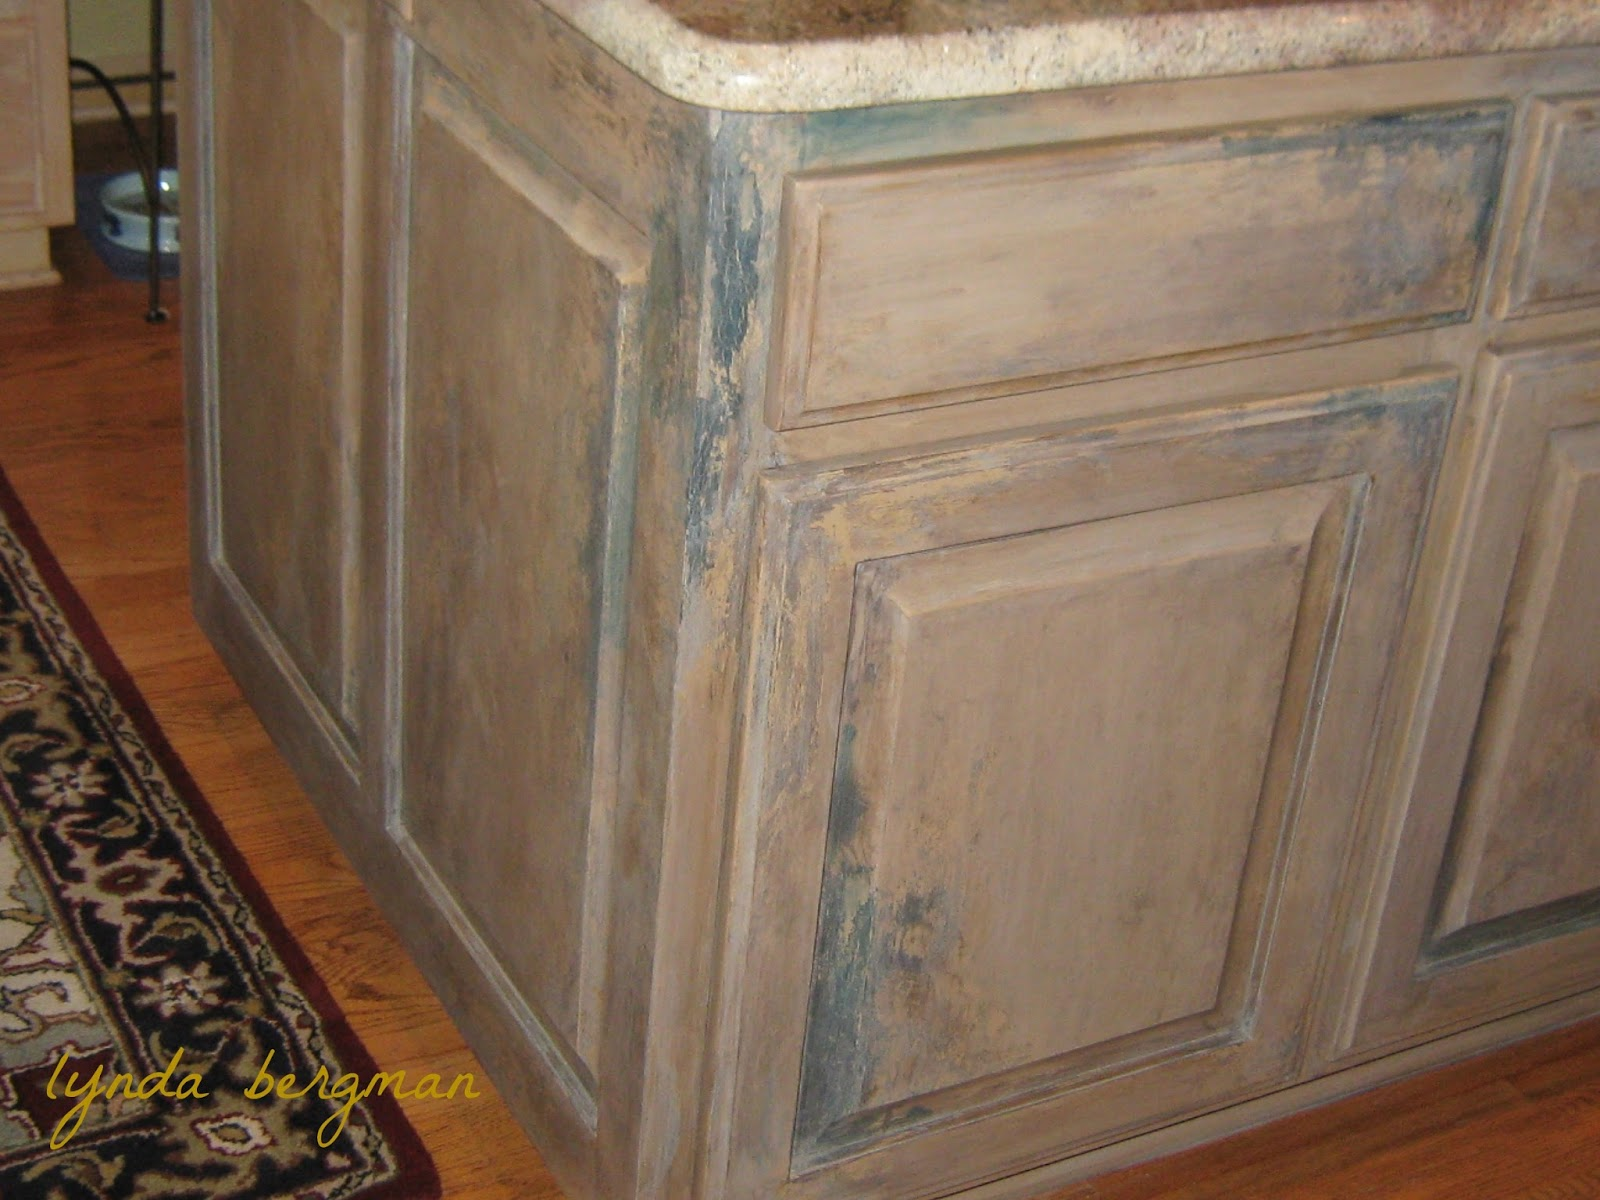 LYNDA BERGMAN DECORATIVE ARTISAN: PAINTING A DISTRESSED ...